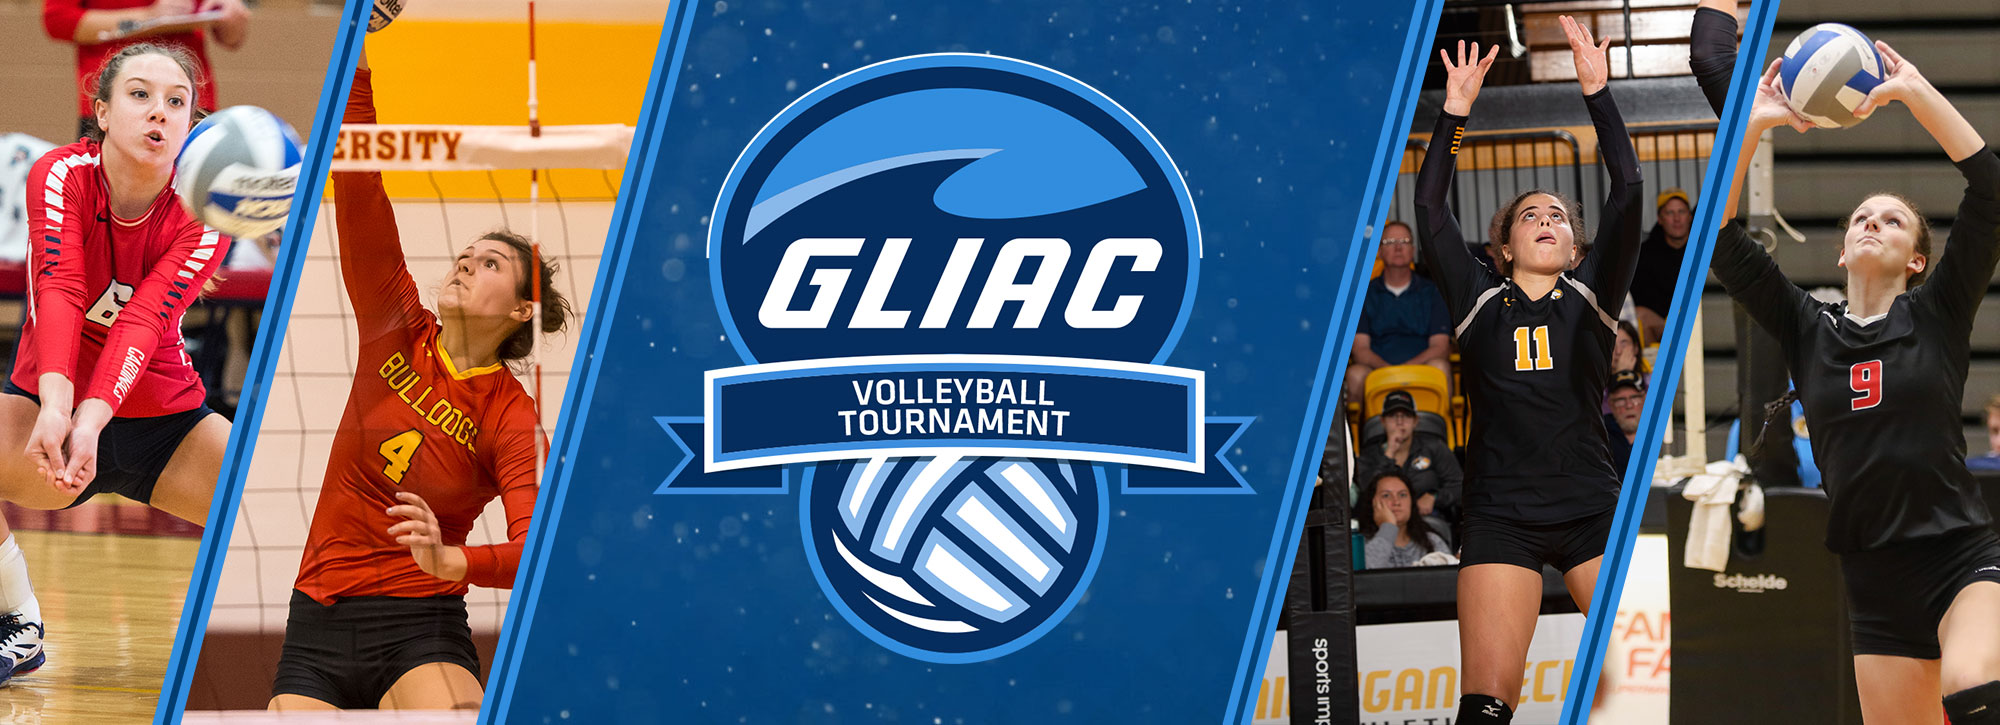 Final Four Teams Headed to Ferris State for GLIAC Volleyball Tournament Weekend